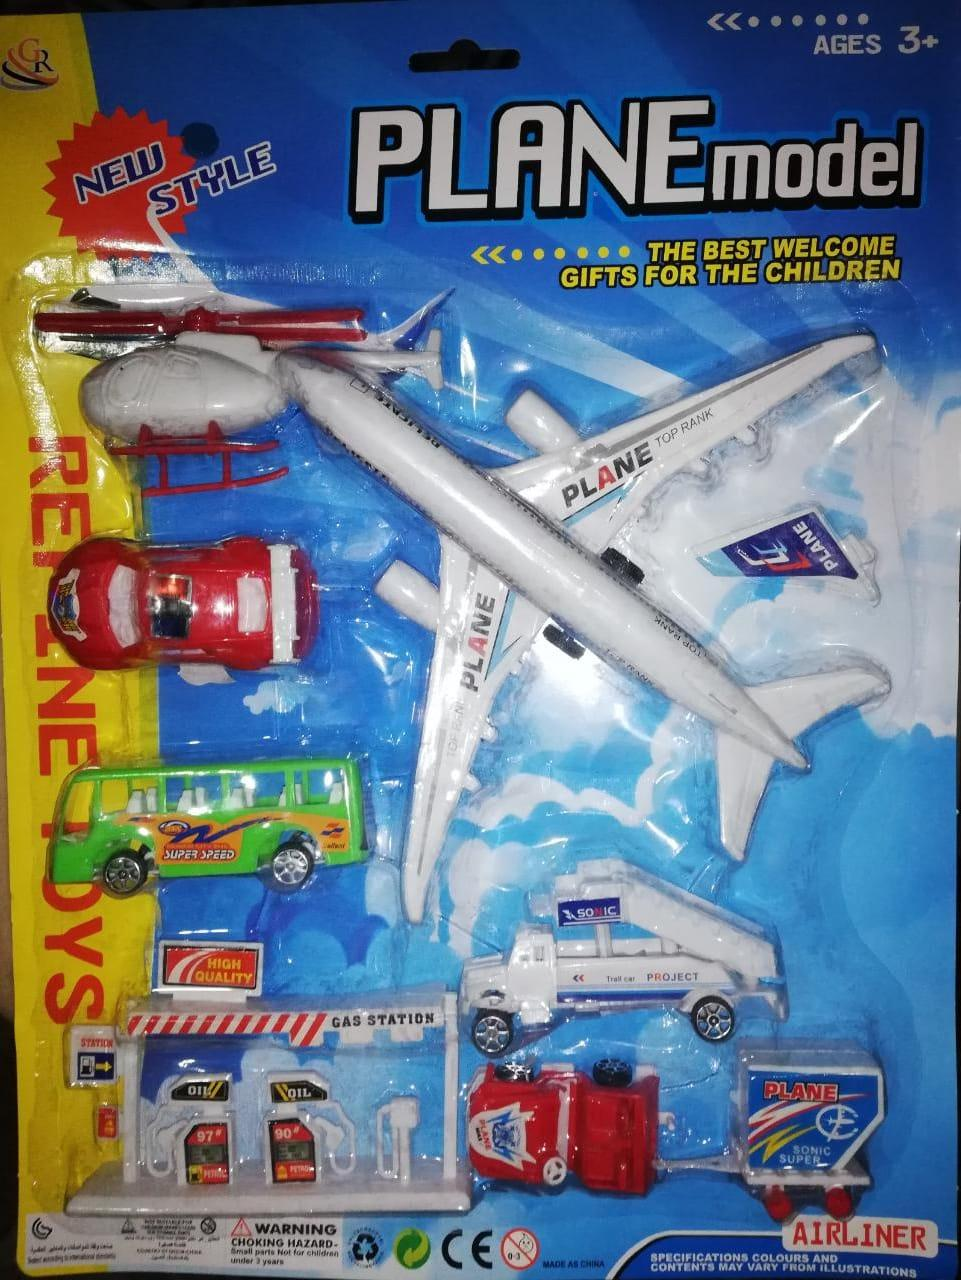 Plan Model (Airport Set) Toy for Kids